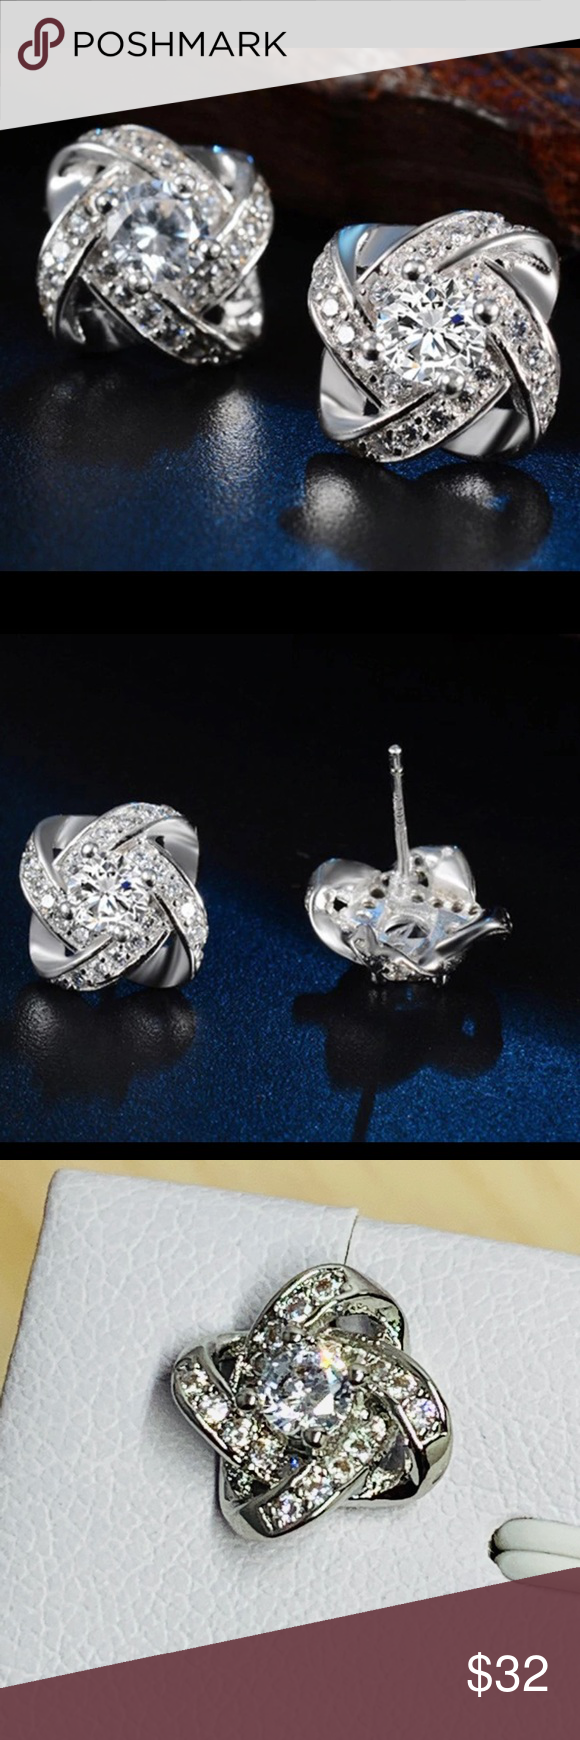 Pandora Jewelry 60 Off Visit Sterling Silver Cz Stud Earrings New Material Sterli Fashion Earrings Pandora Jewelry Charms Pandora Jewelry Bracelets